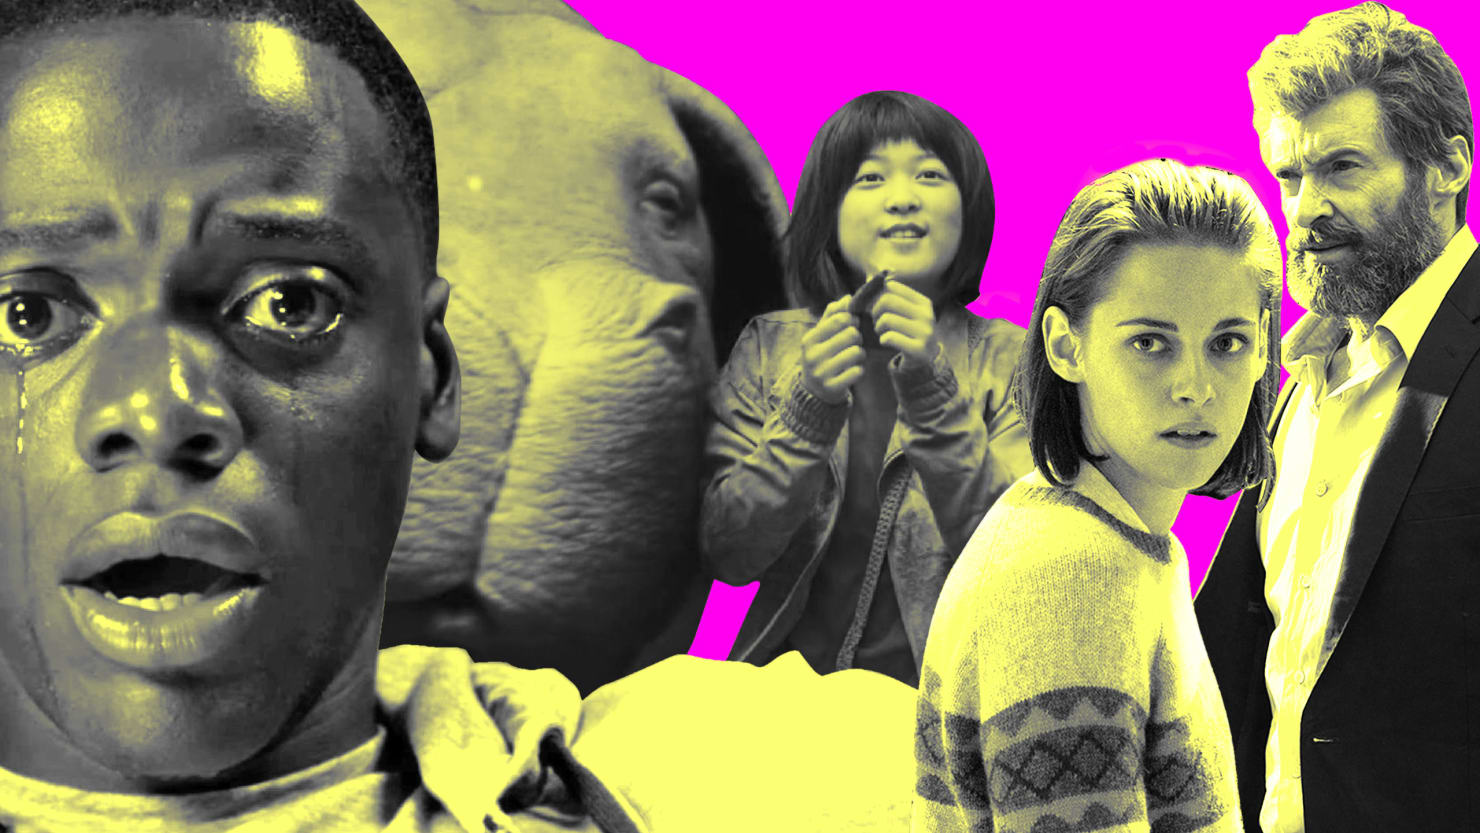 The 10 Best Movies of 2017 (So Far): 'Logan,' 'Personal Shopper,' and More